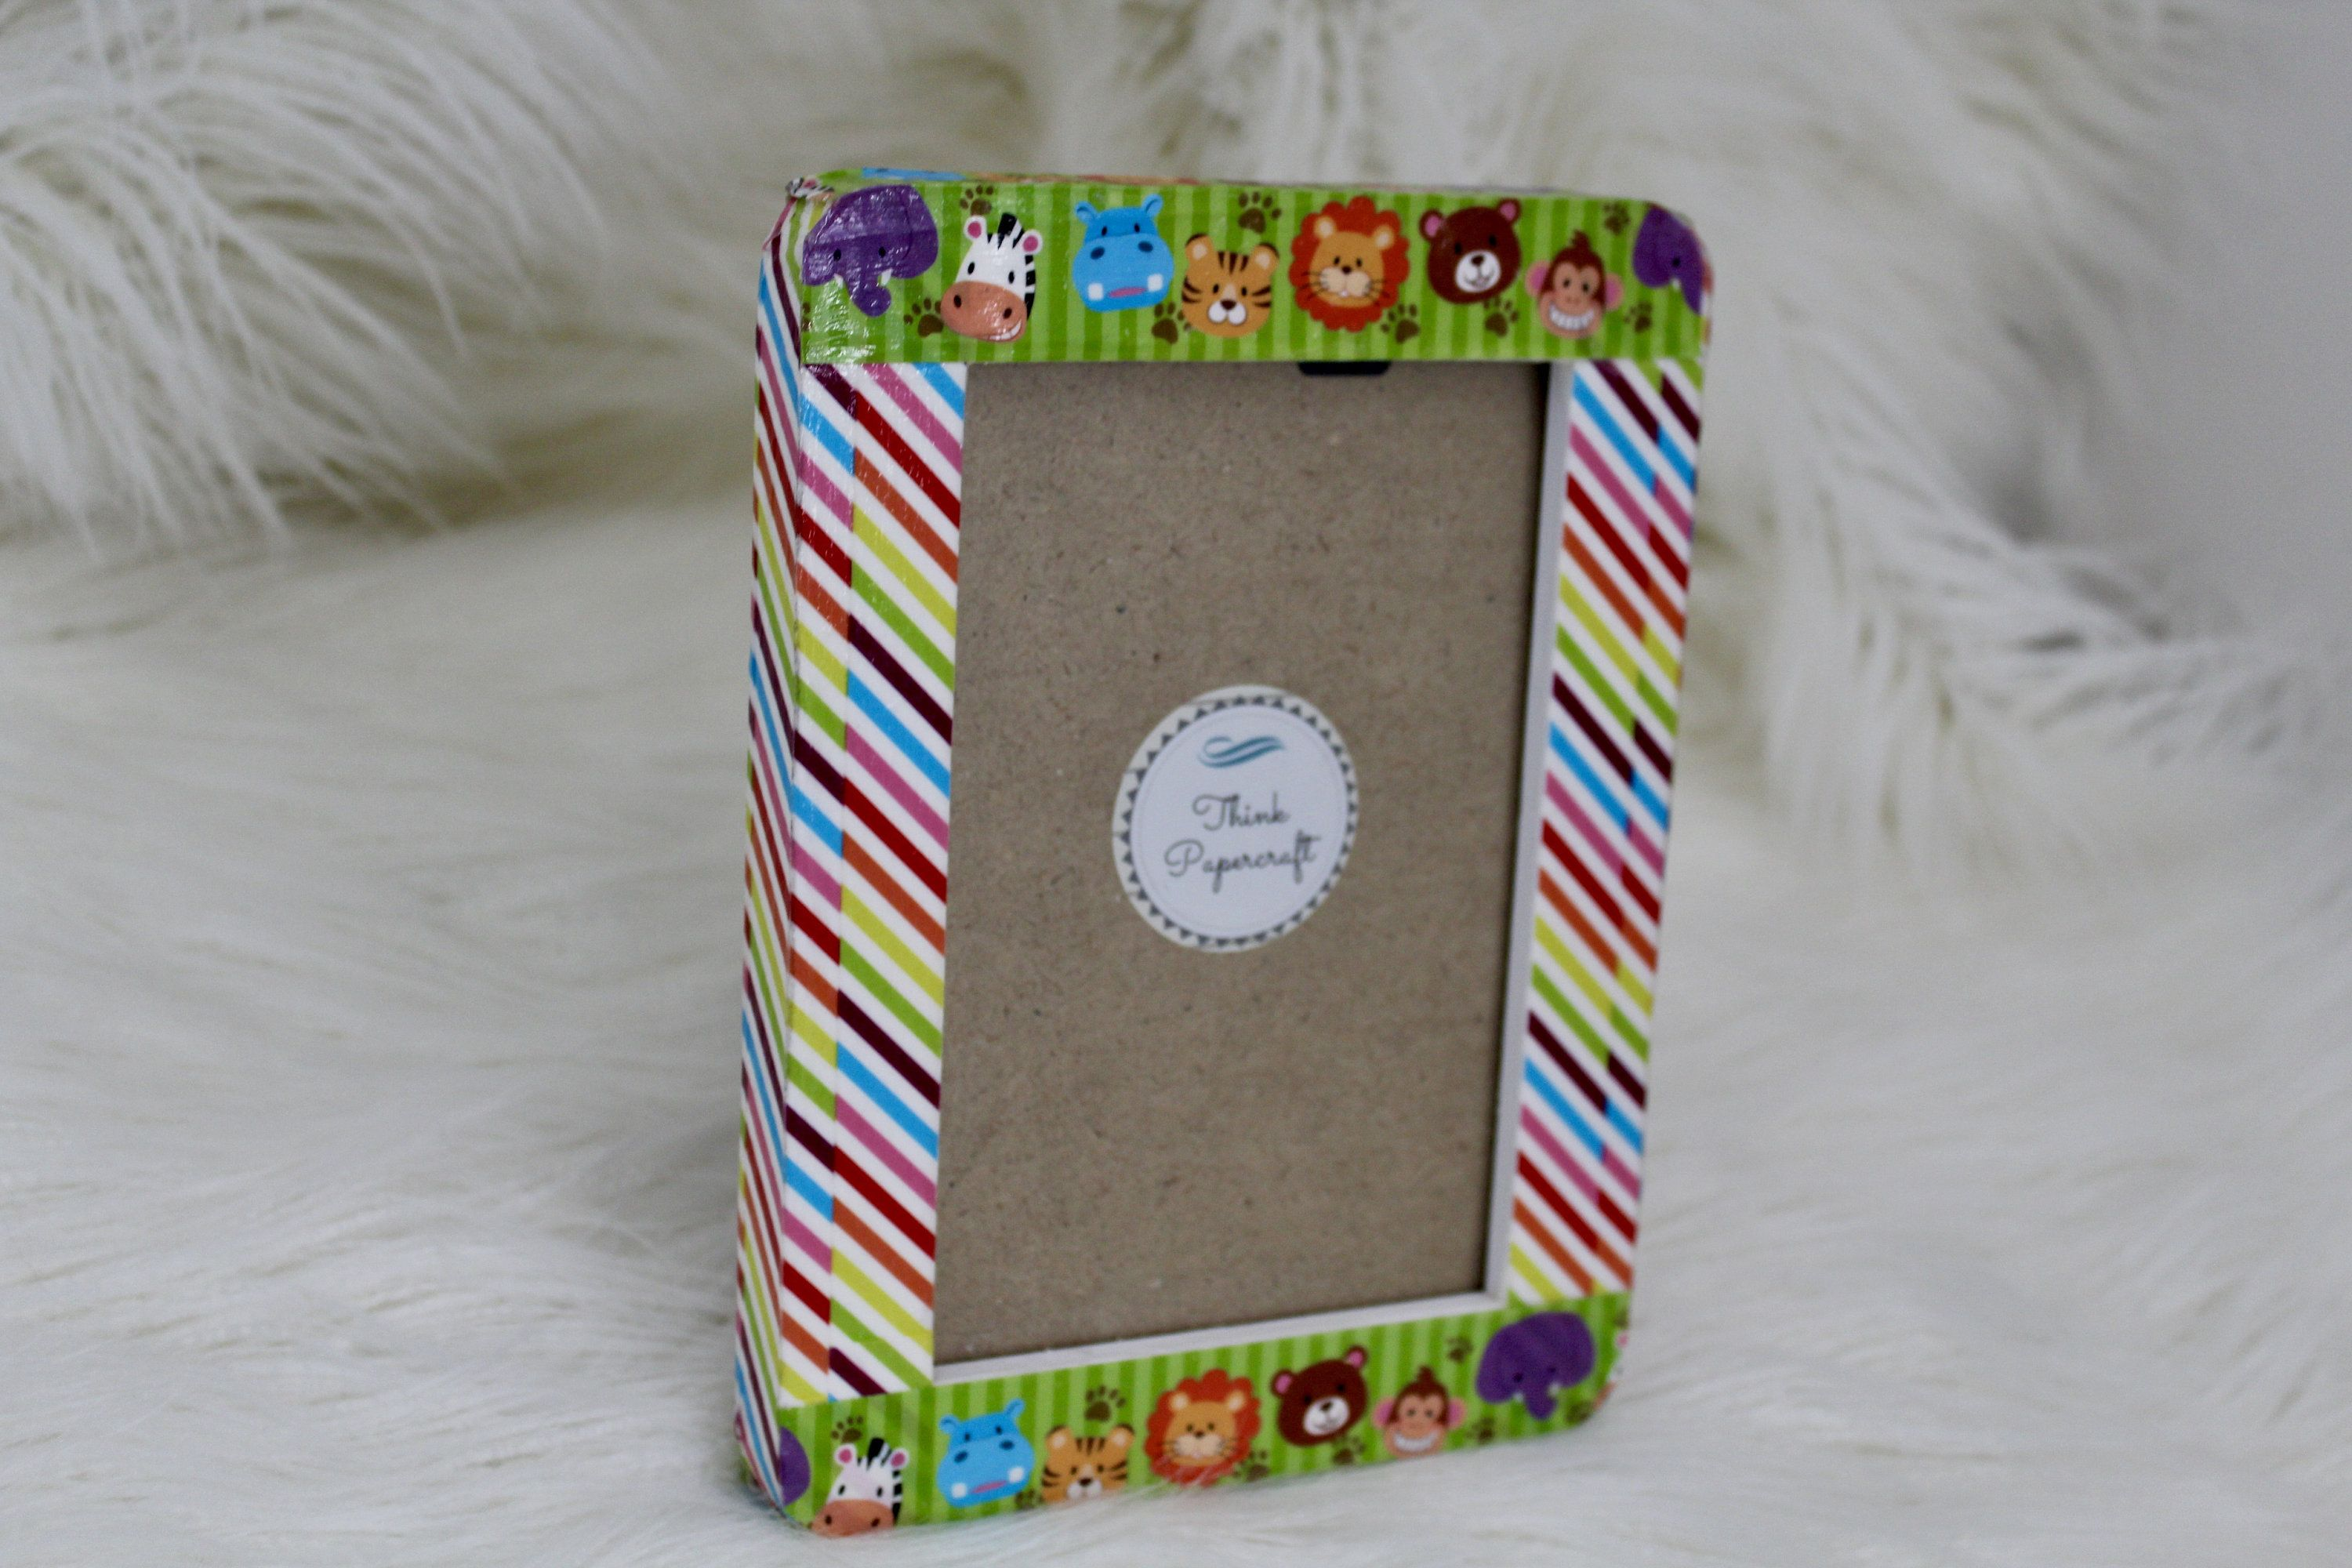 Zoo Animals And Rainbow Stripes Decorated Photo Picture Frame 4x6 Inches 10x15 Cms Unique Birthday Or Baby Shower Gift Photo Decor Rainbow Stripes Picture Frames